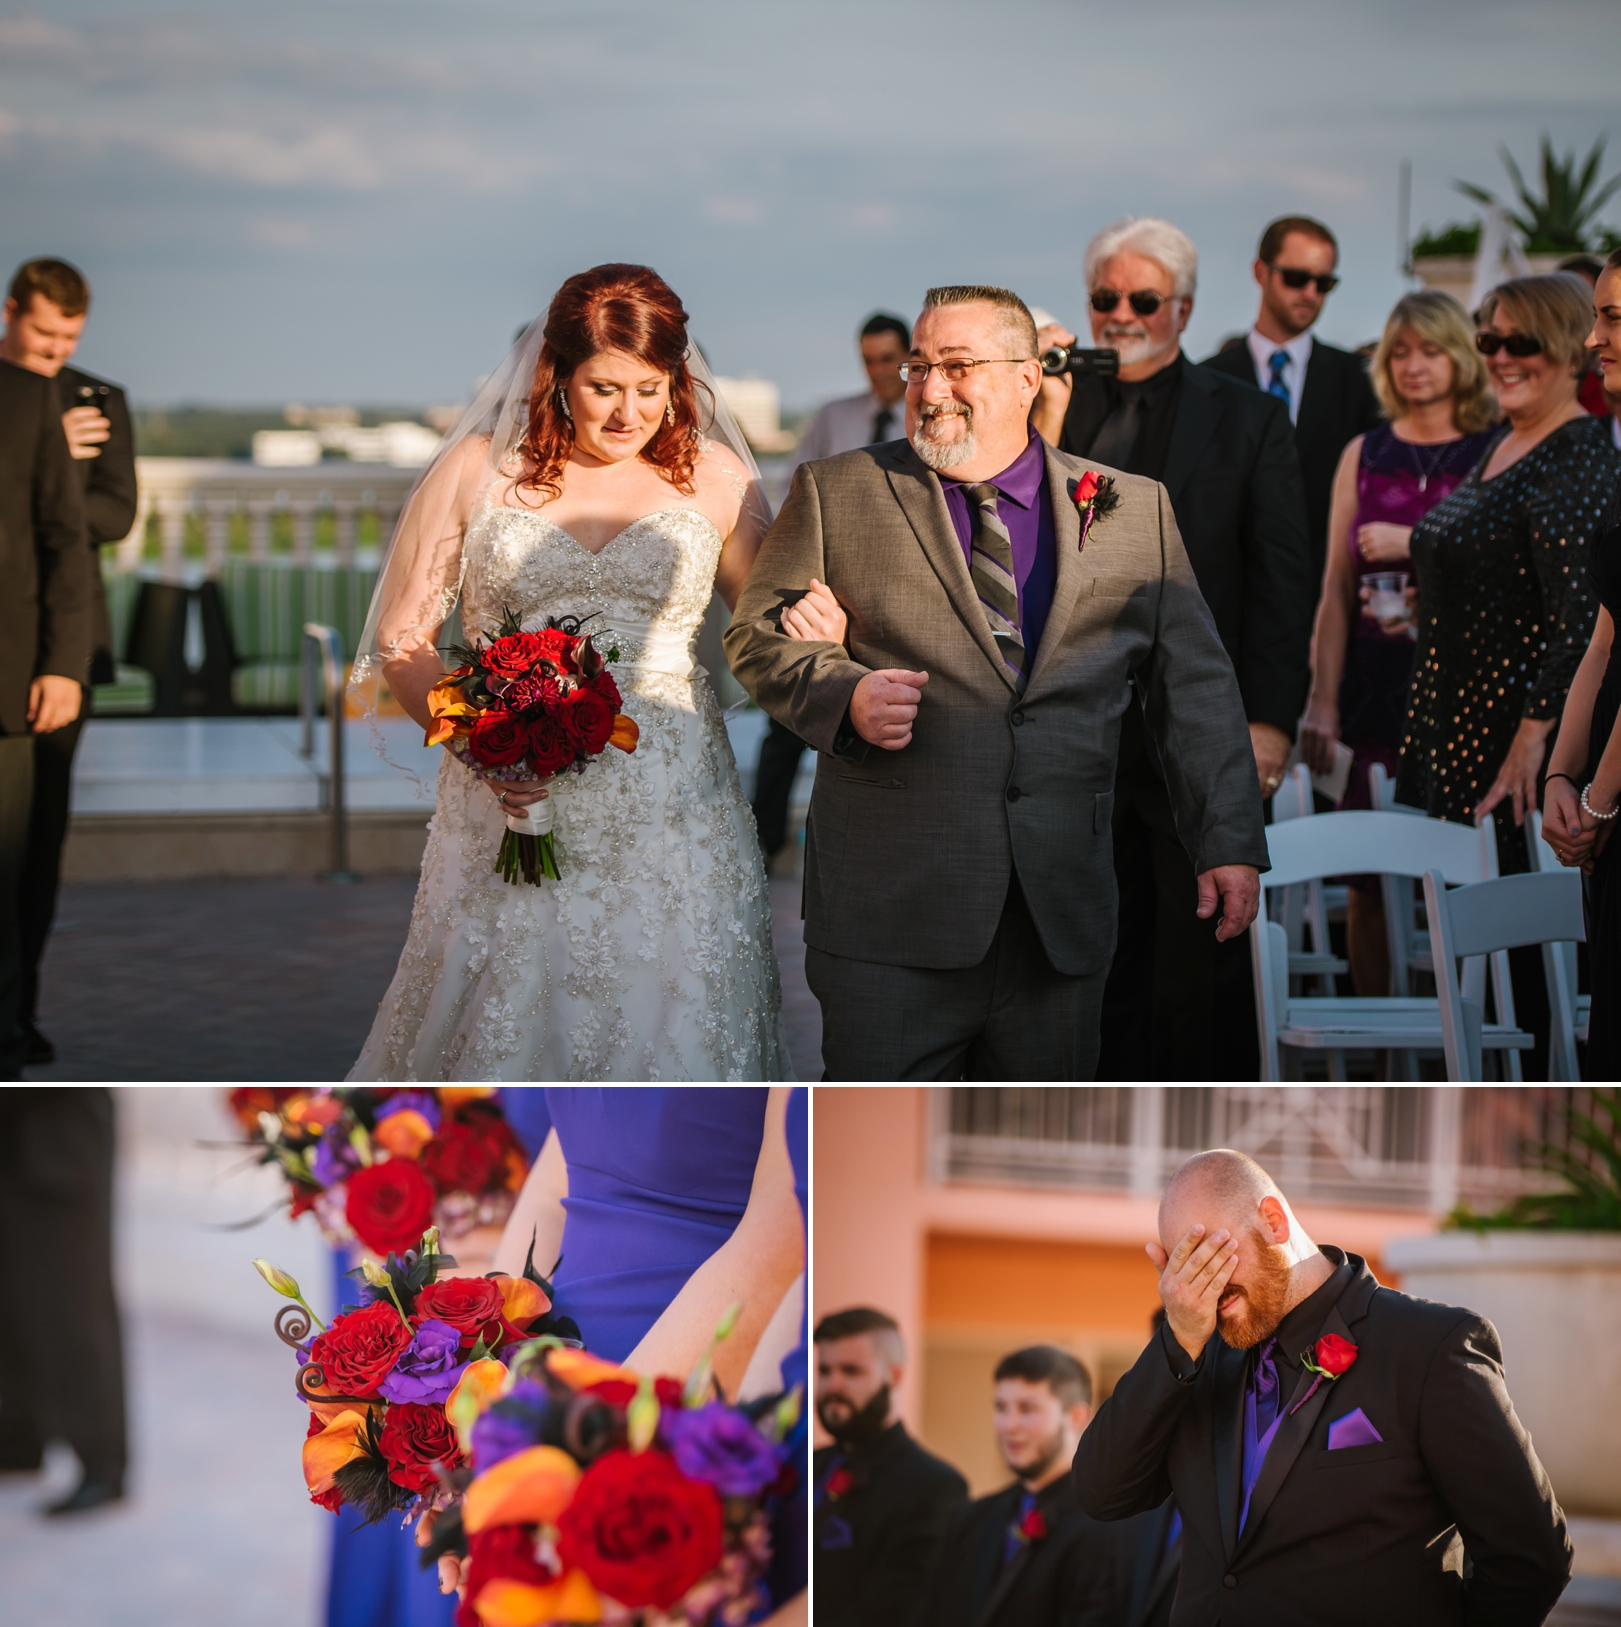 clearwater-beach-hyatt-masquerade-ballroom-themed-wedding-photograpy_0012.jpg